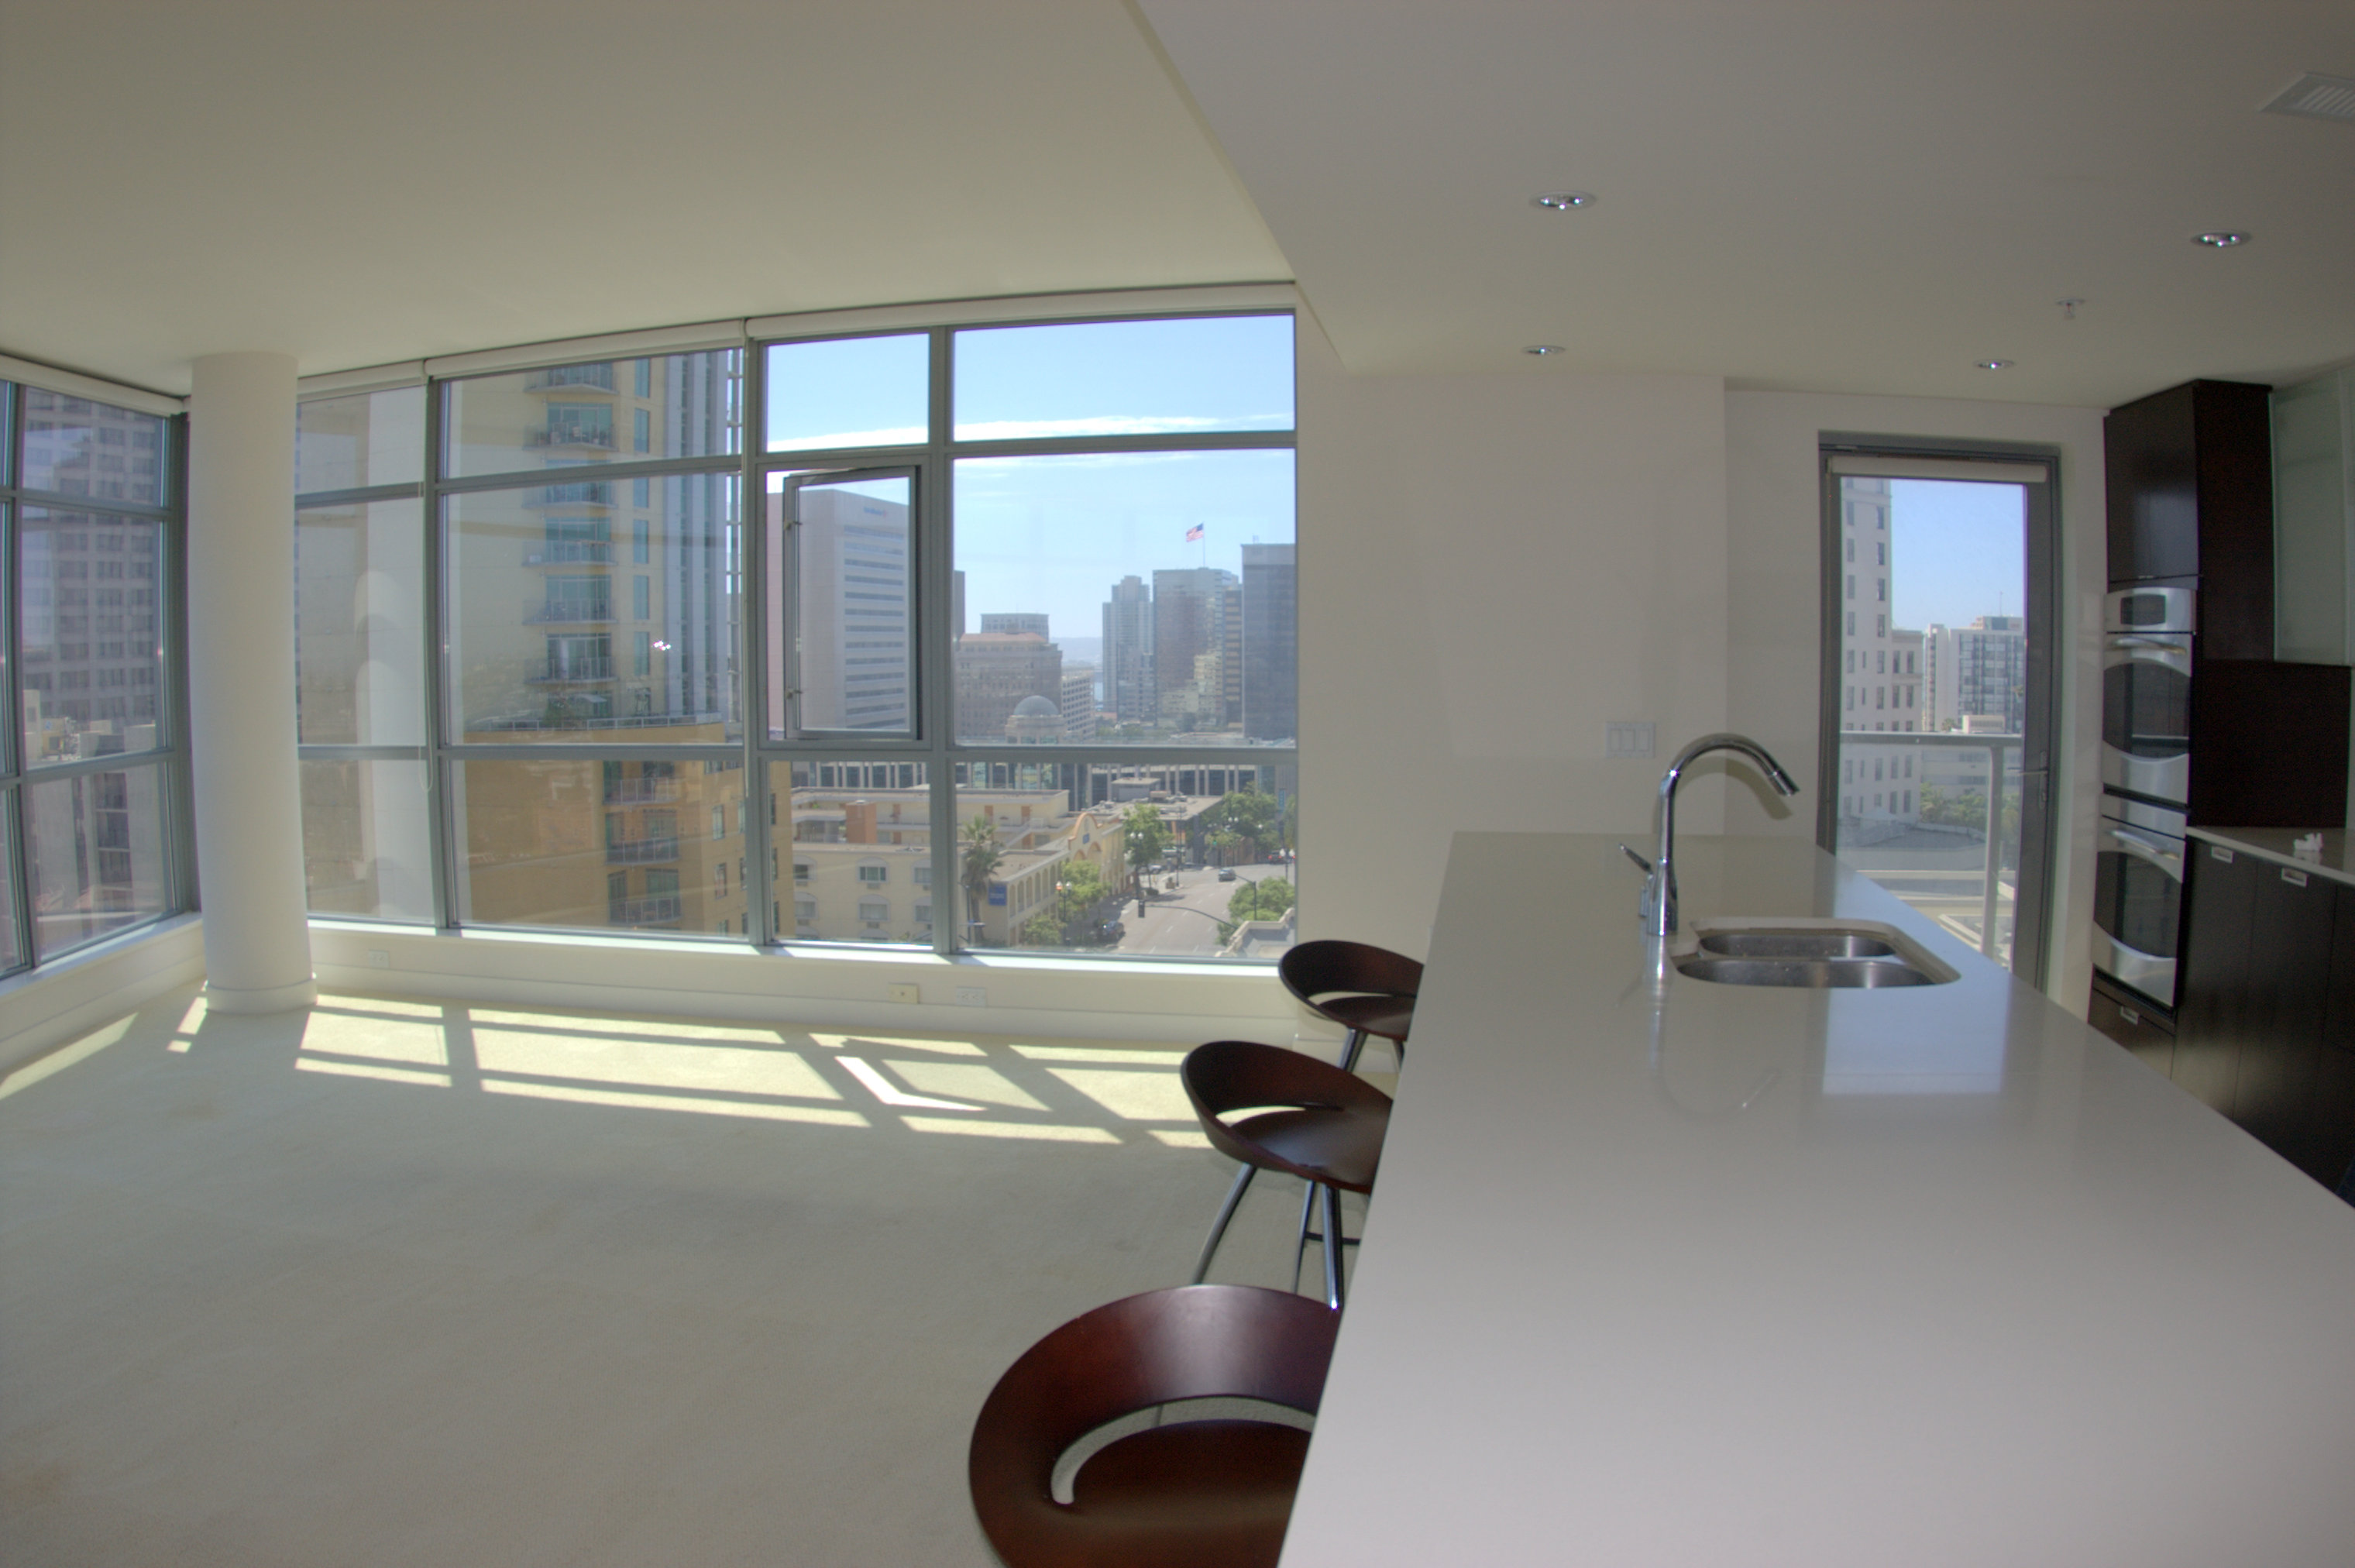 For Rent Southwest Facing Condo In Aria In Downtown San Diego 92101 Urban Living